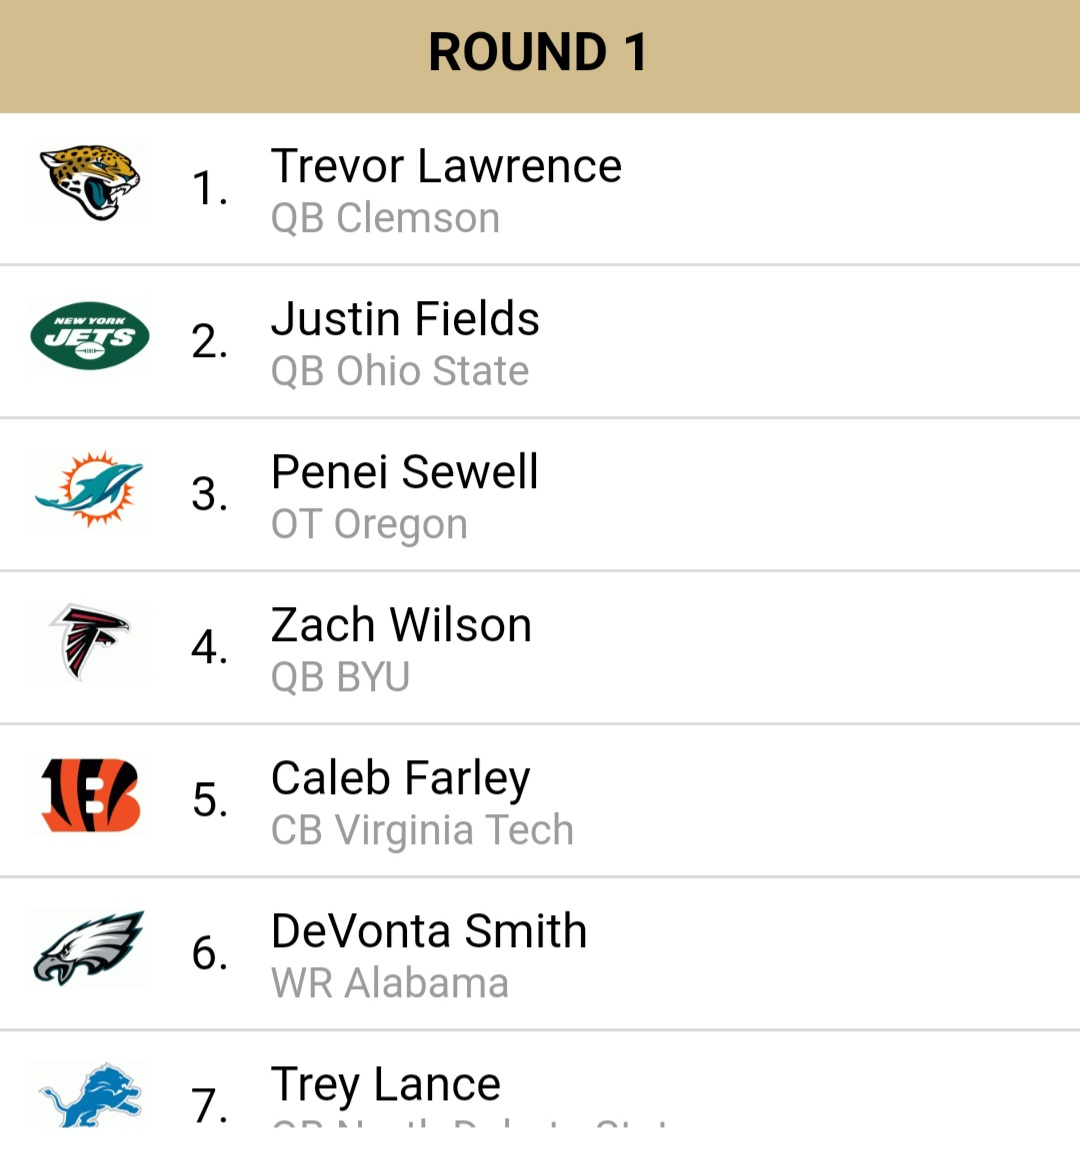 Me and @nbakerngb decided to do a way too early mock draft for the NFL draft. May do one closer to the draft. https://t.co/oY1aJlhdcG